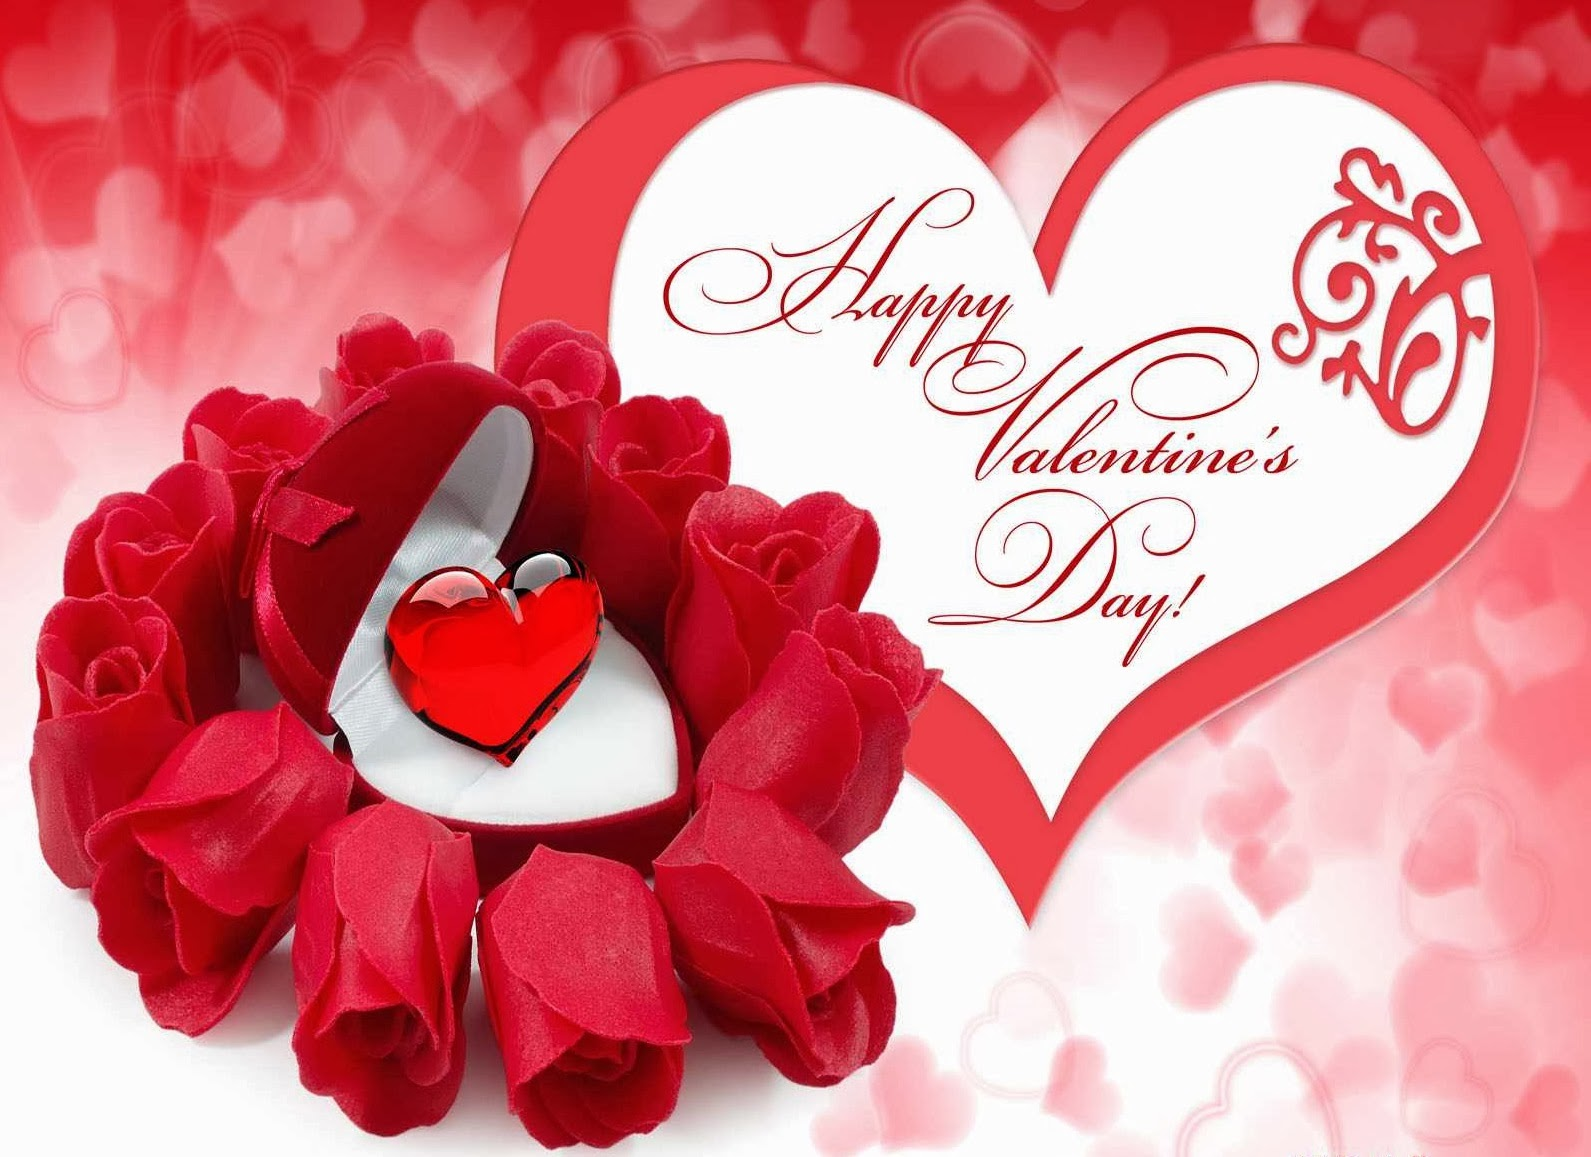 Happy Valentines Day 2015 SMS Quotes Wishes: Happy